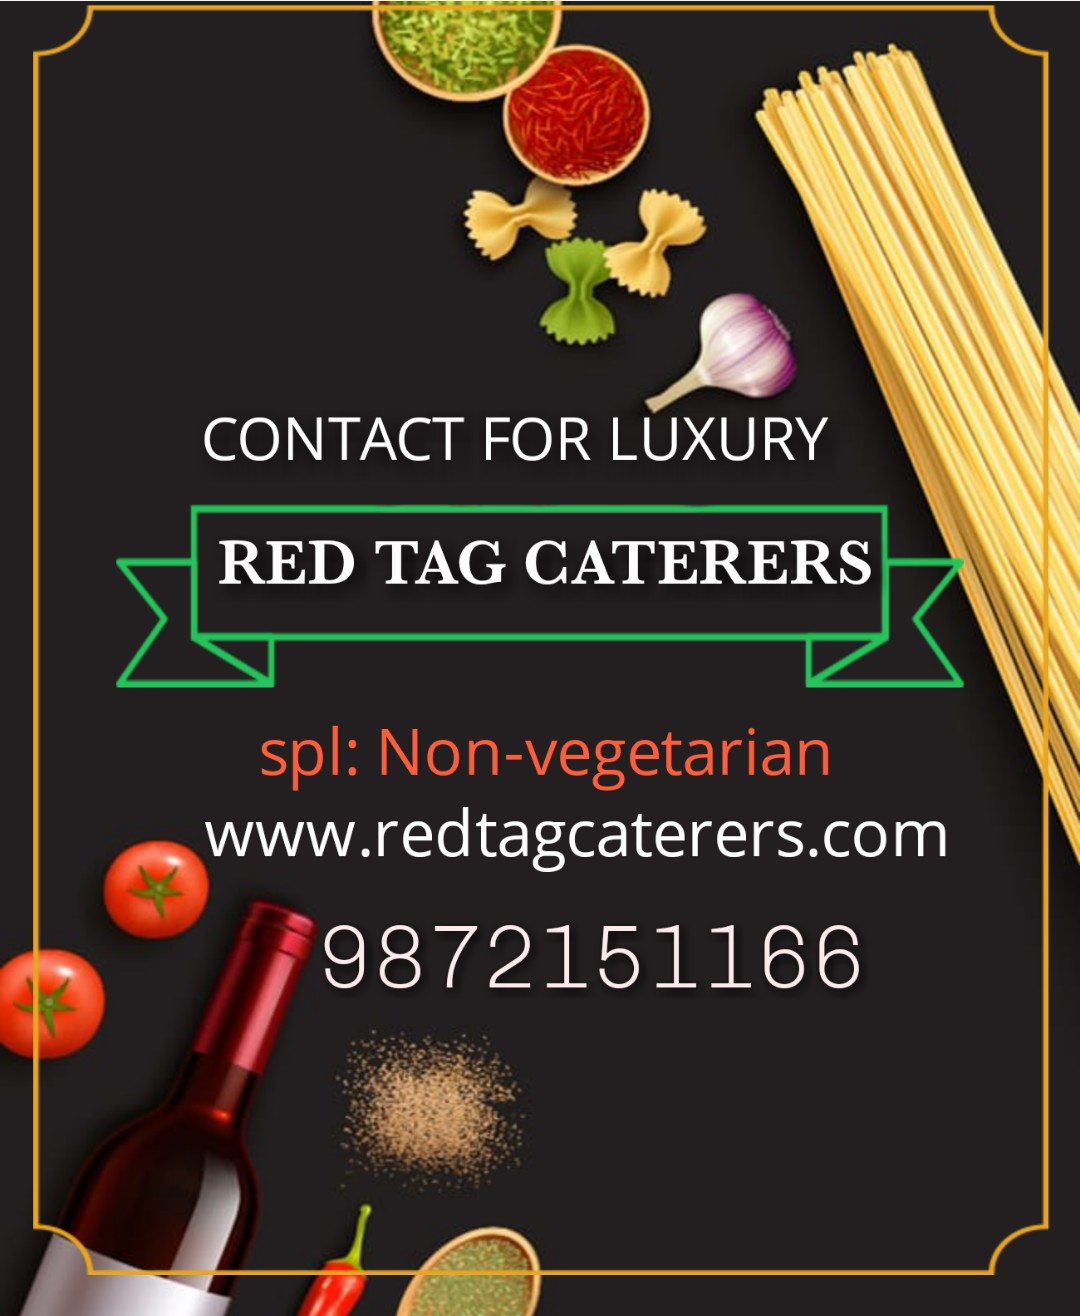 Red Tag Caterers, Best party catering service in Ludhiana city of Punjab, best wedding caterers in Ludhiana, best corporate caterers in Ludhiana, best innovative caterer in Ludhiana, best caterers,